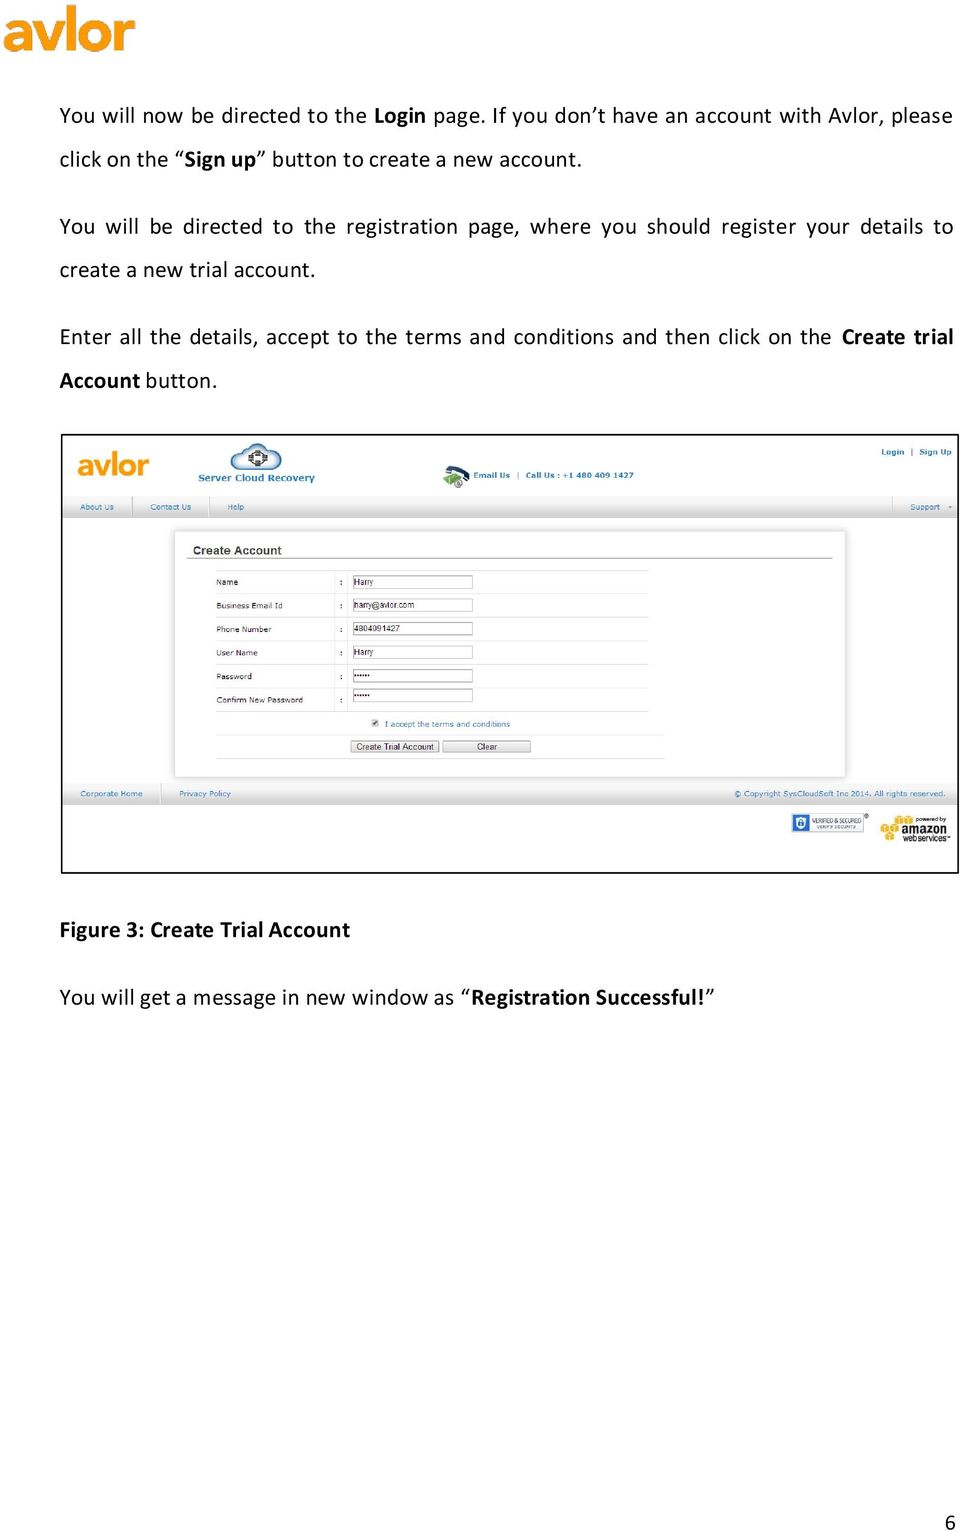 You will be directed to the registration page, where you should register your details to create a new trial account.